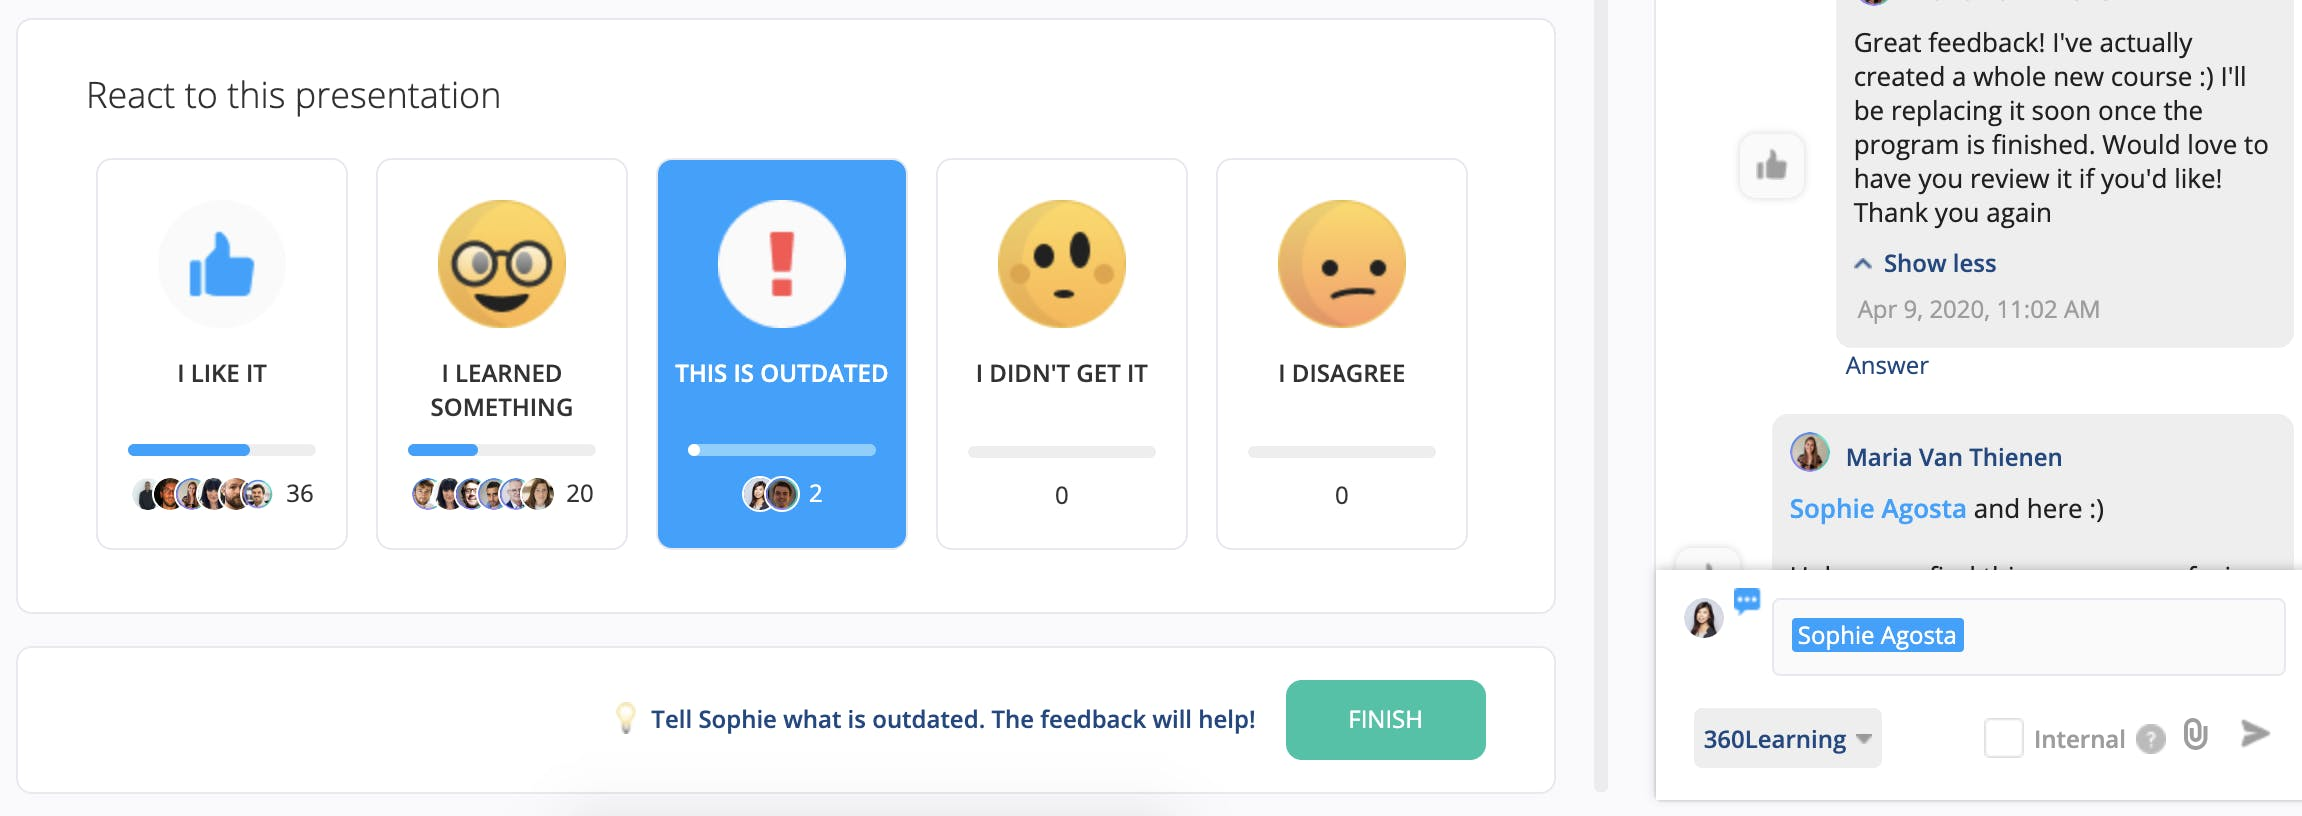 Instant reactions and feedback on one of the courses hosted on our 360Learning platform